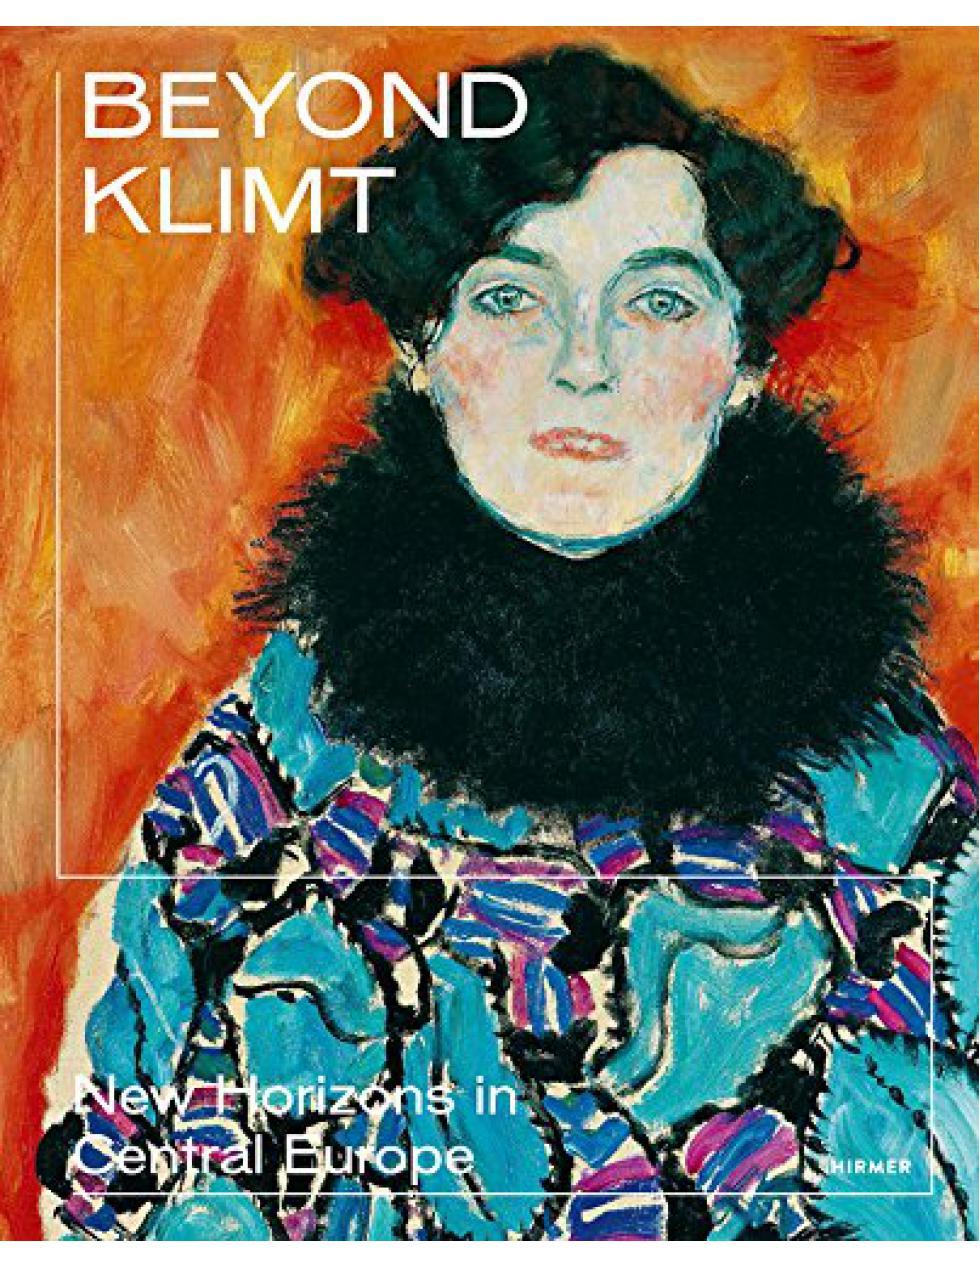 Beyond Klimt - New Horizons in Central Europe - Boekenmarkt de Markies